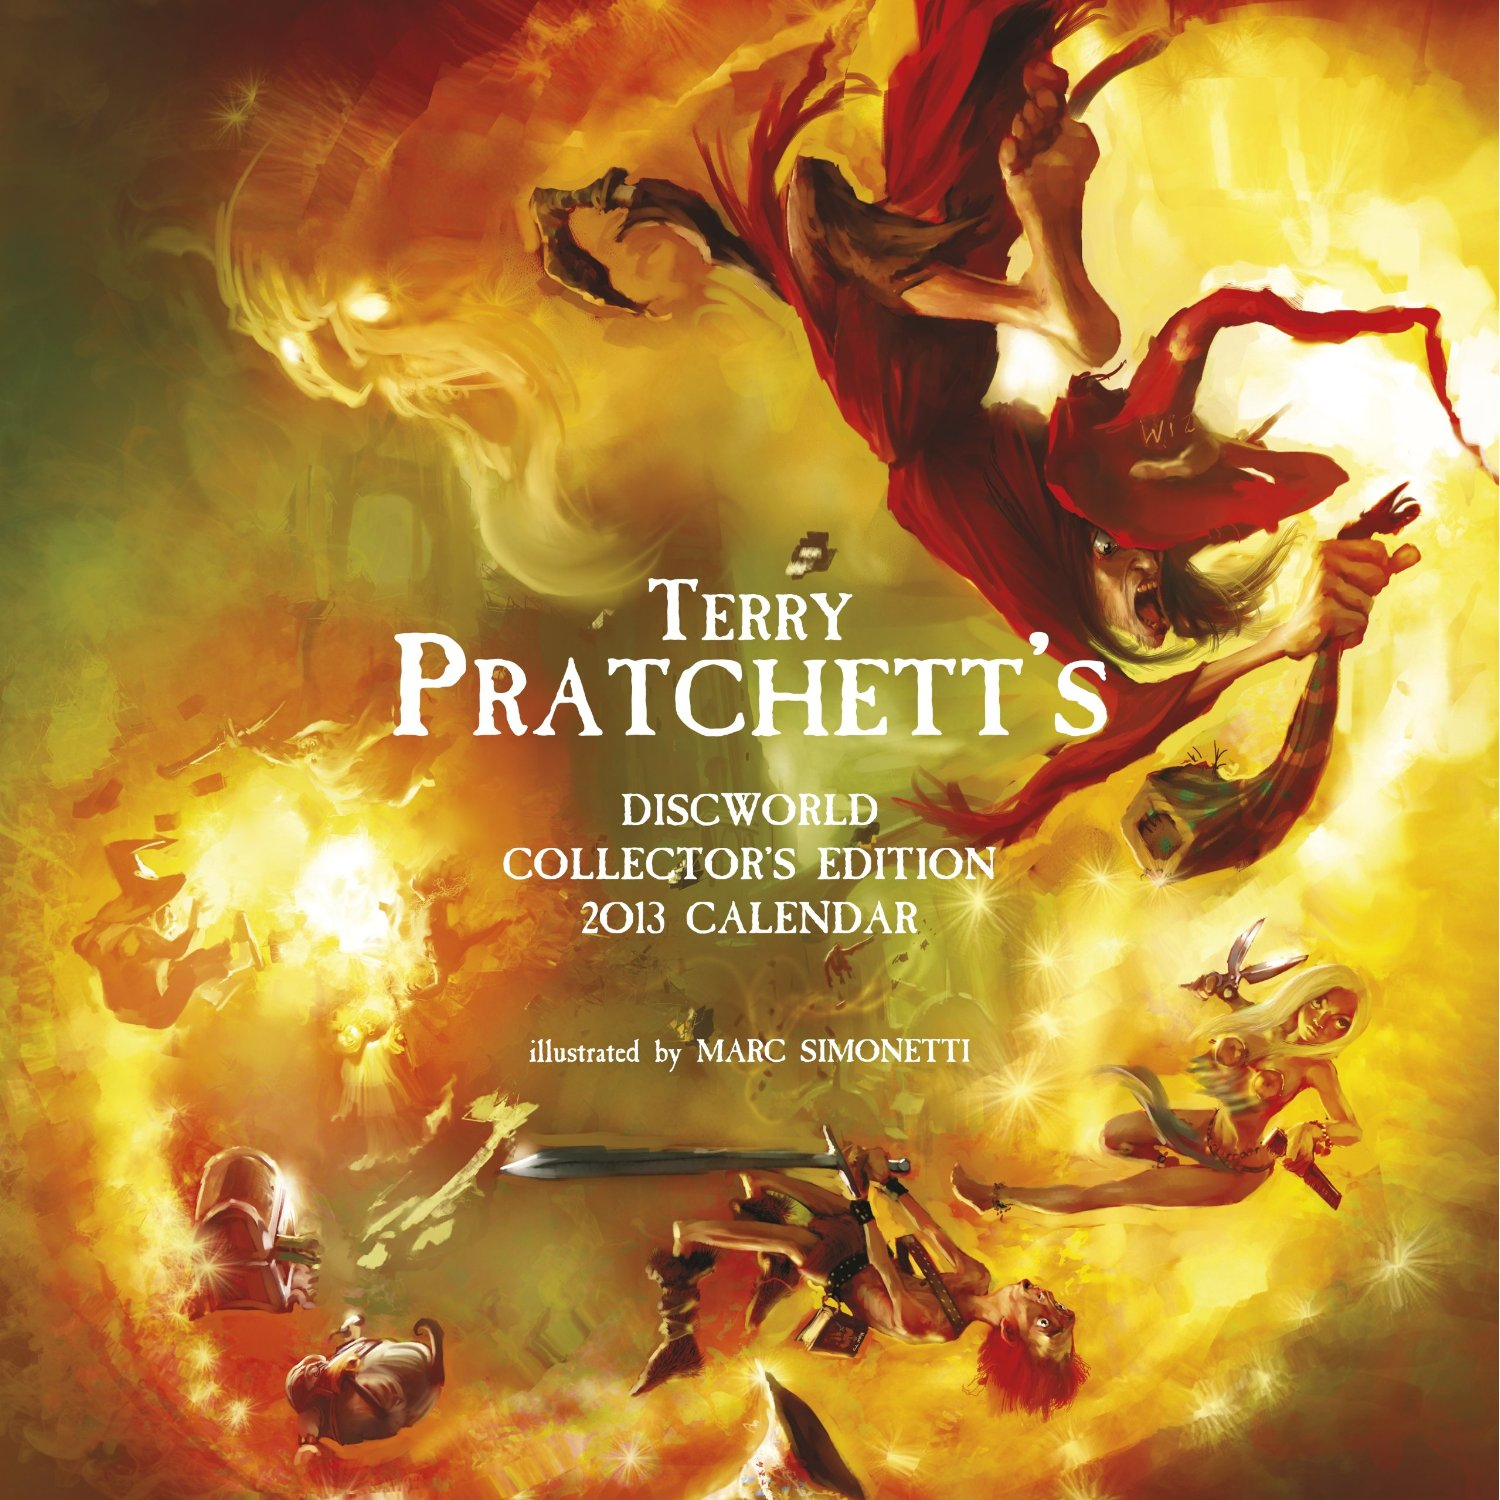 Terry Pratchett's Discworld Collectors' Edition Calendar 2013 by Terry Pratchett, ISBN: 9780575094413